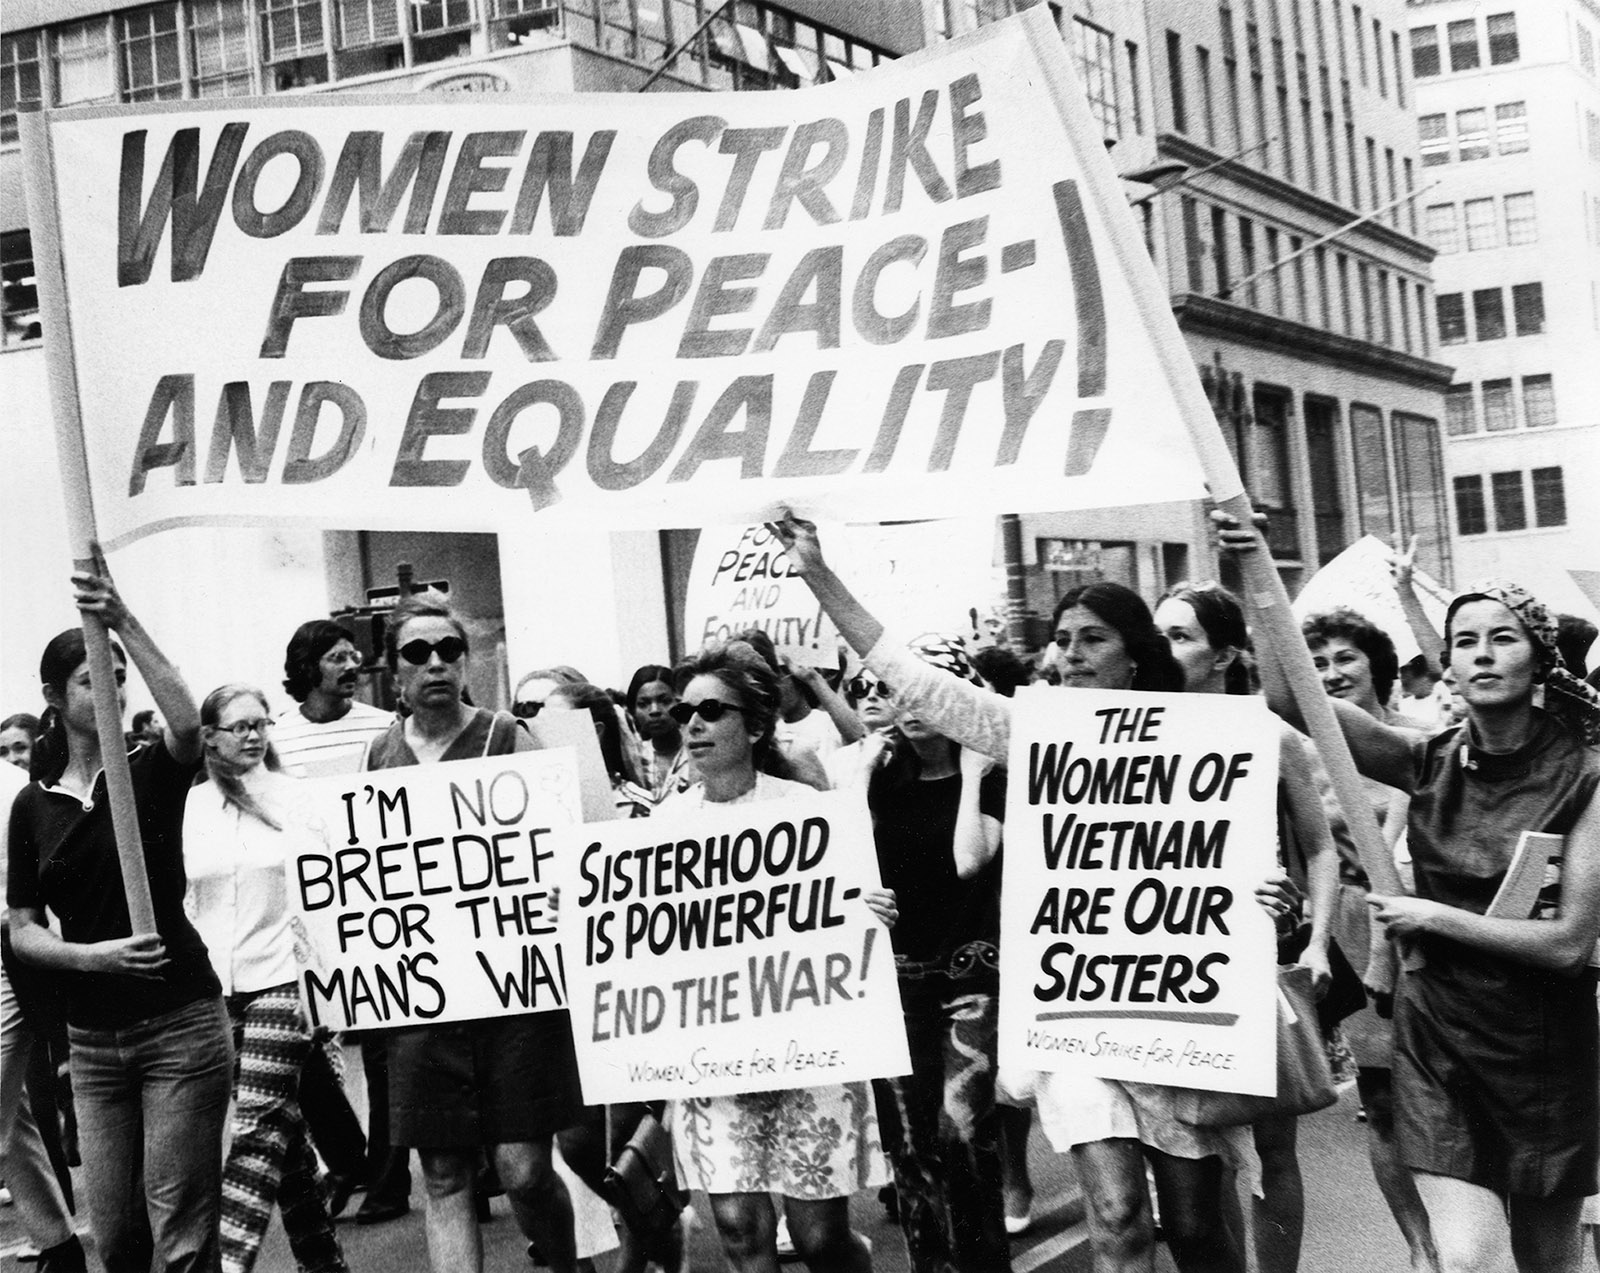 Demonstrators at the Women's Strike for Equality, New York City